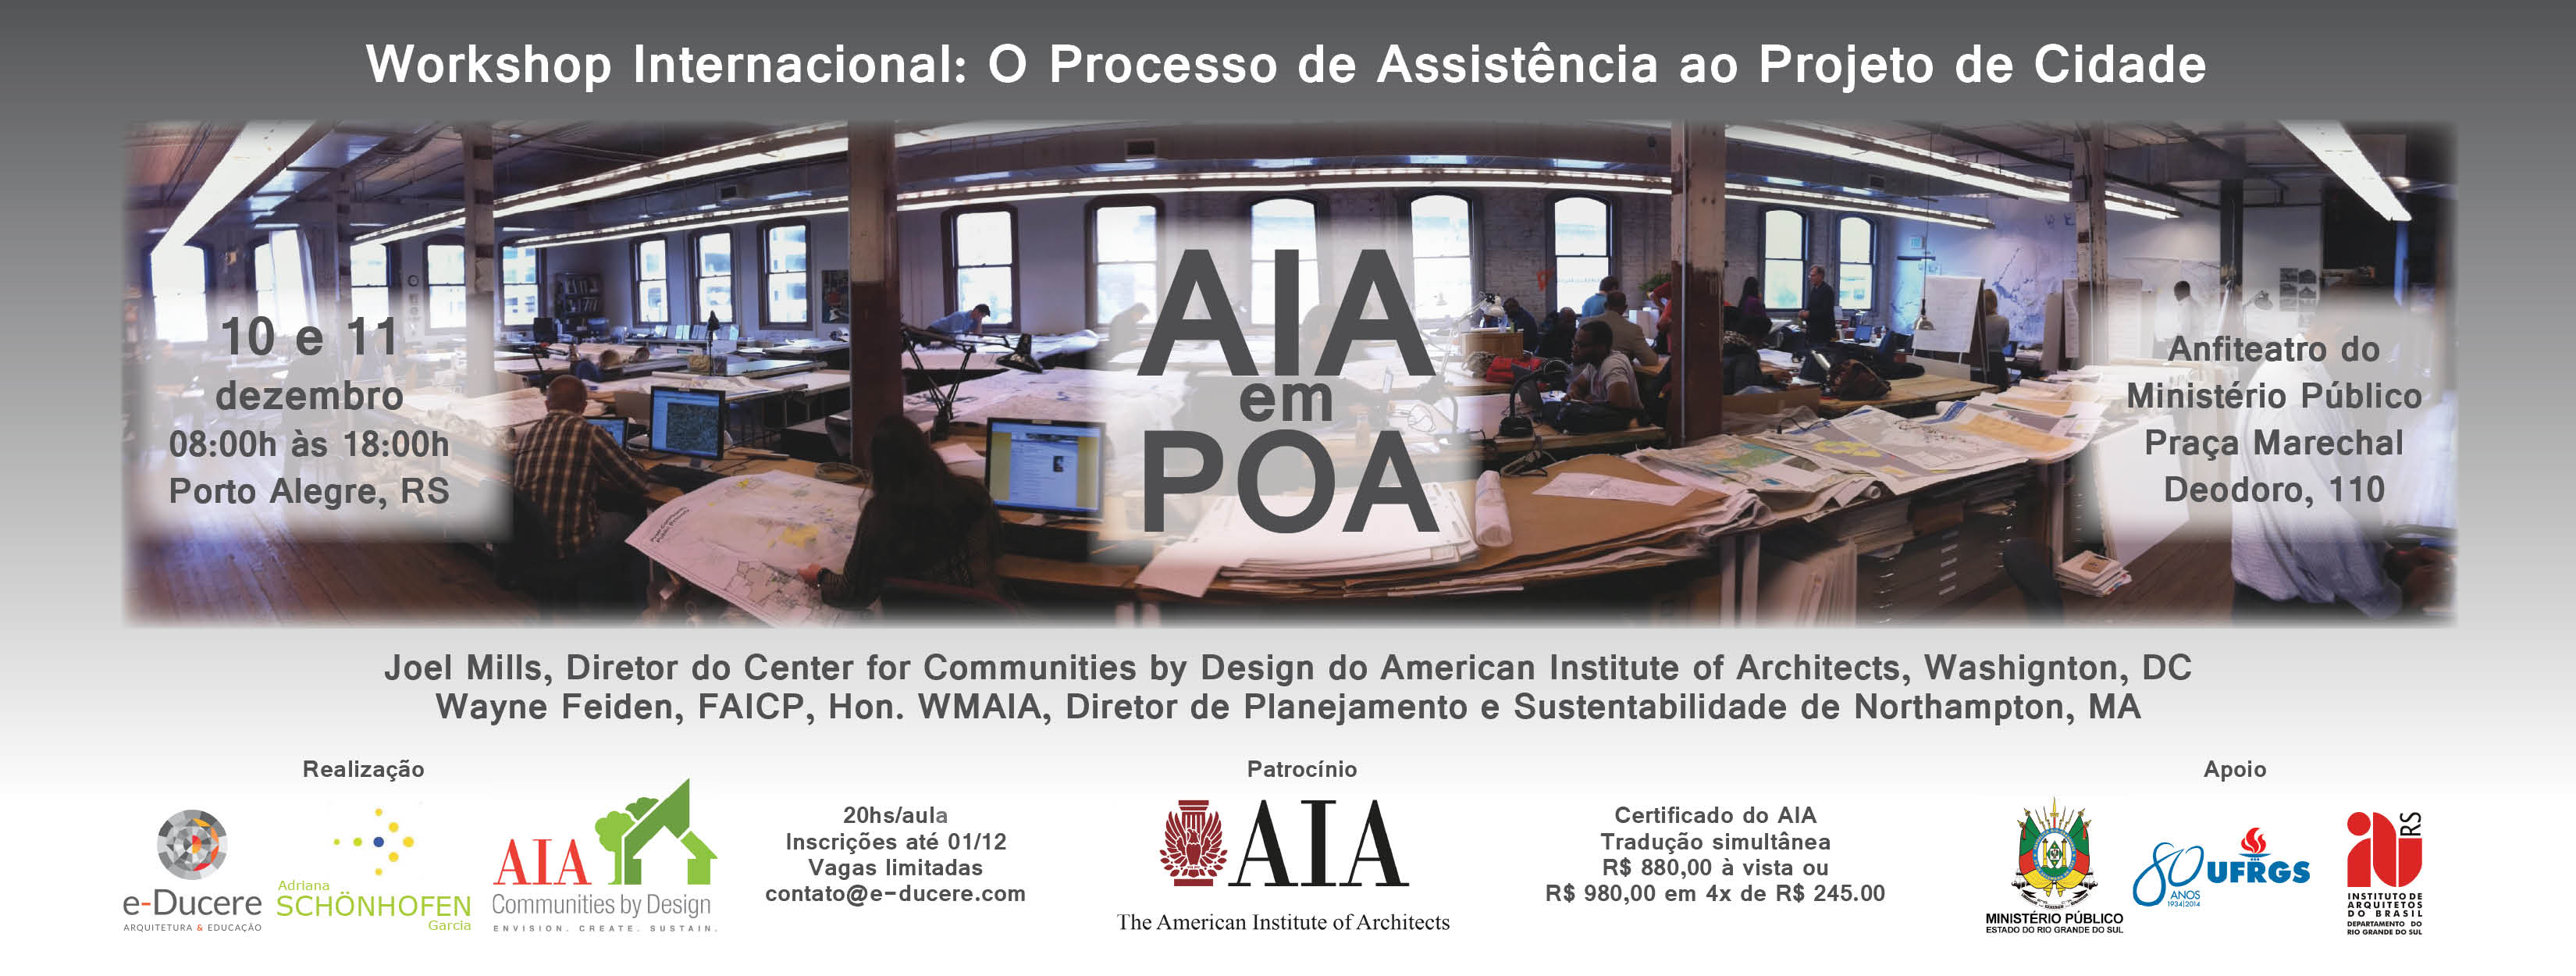 AIA cartaz workshop_2_SIMPLIFICADO_1.0